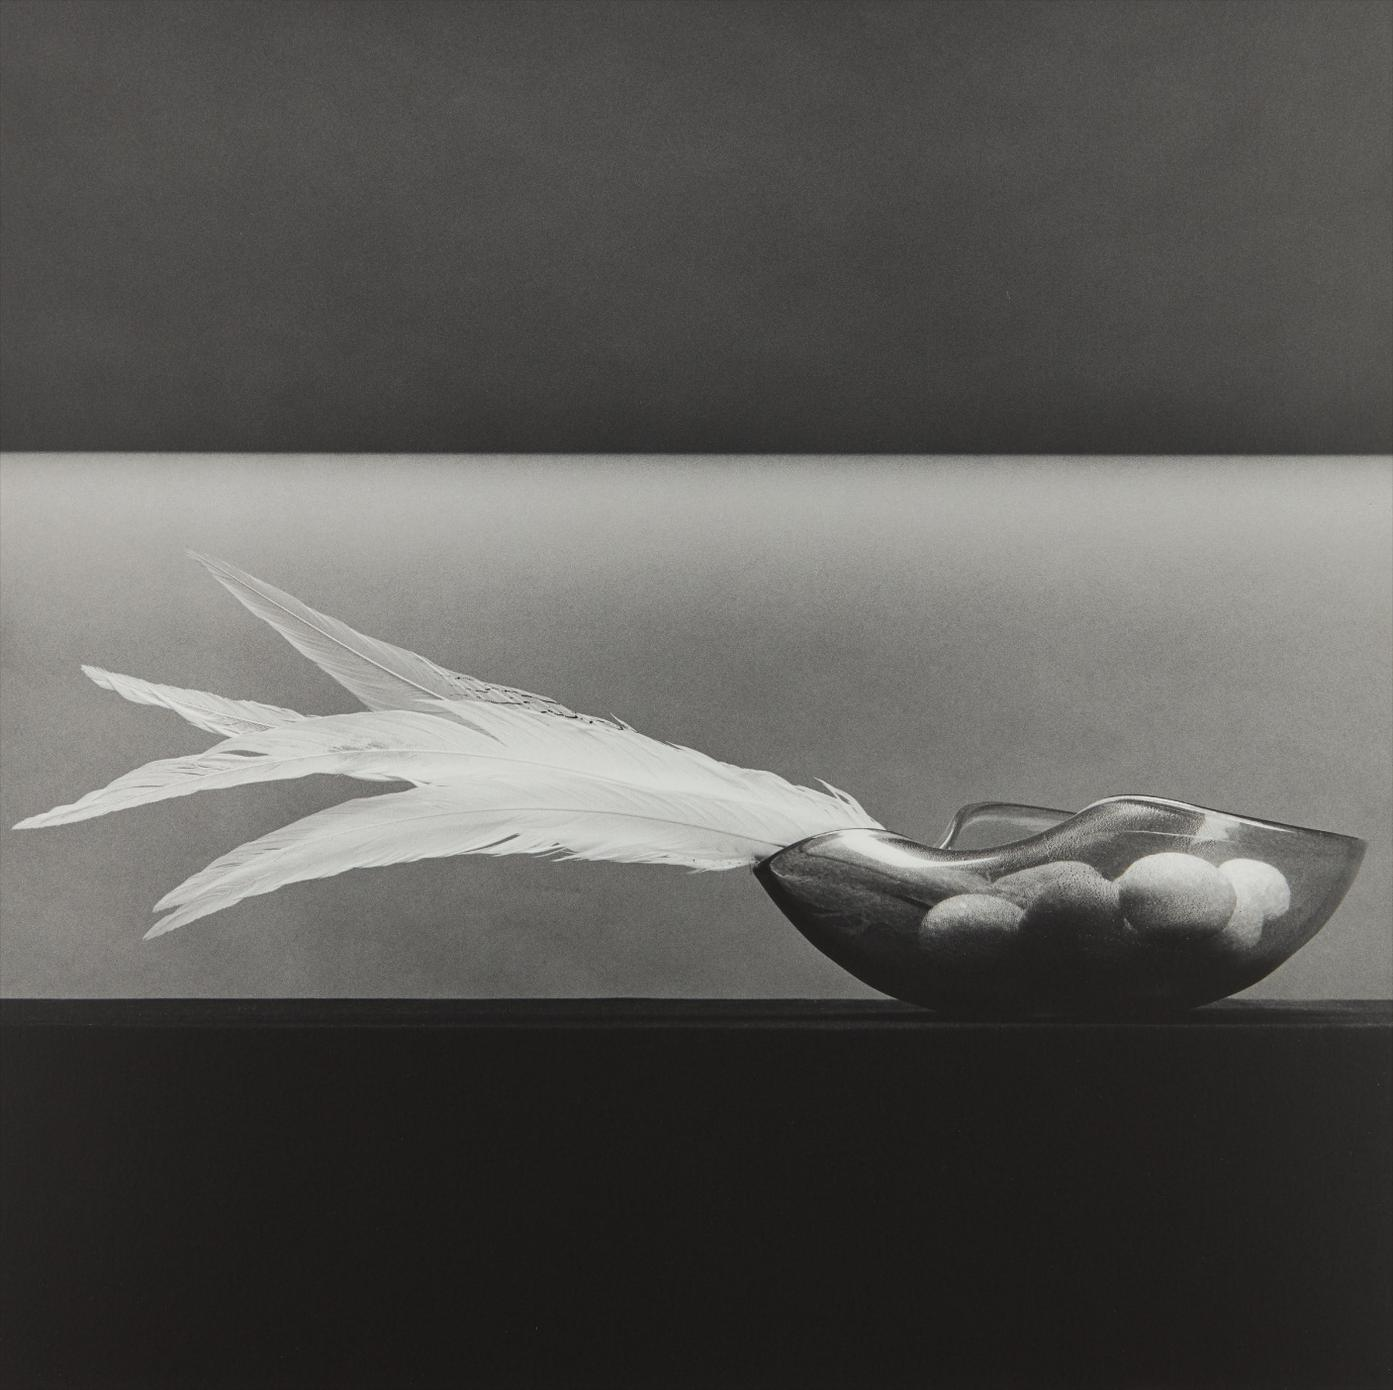 Robert Mapplethorpe-Feathers And Eggs-1985